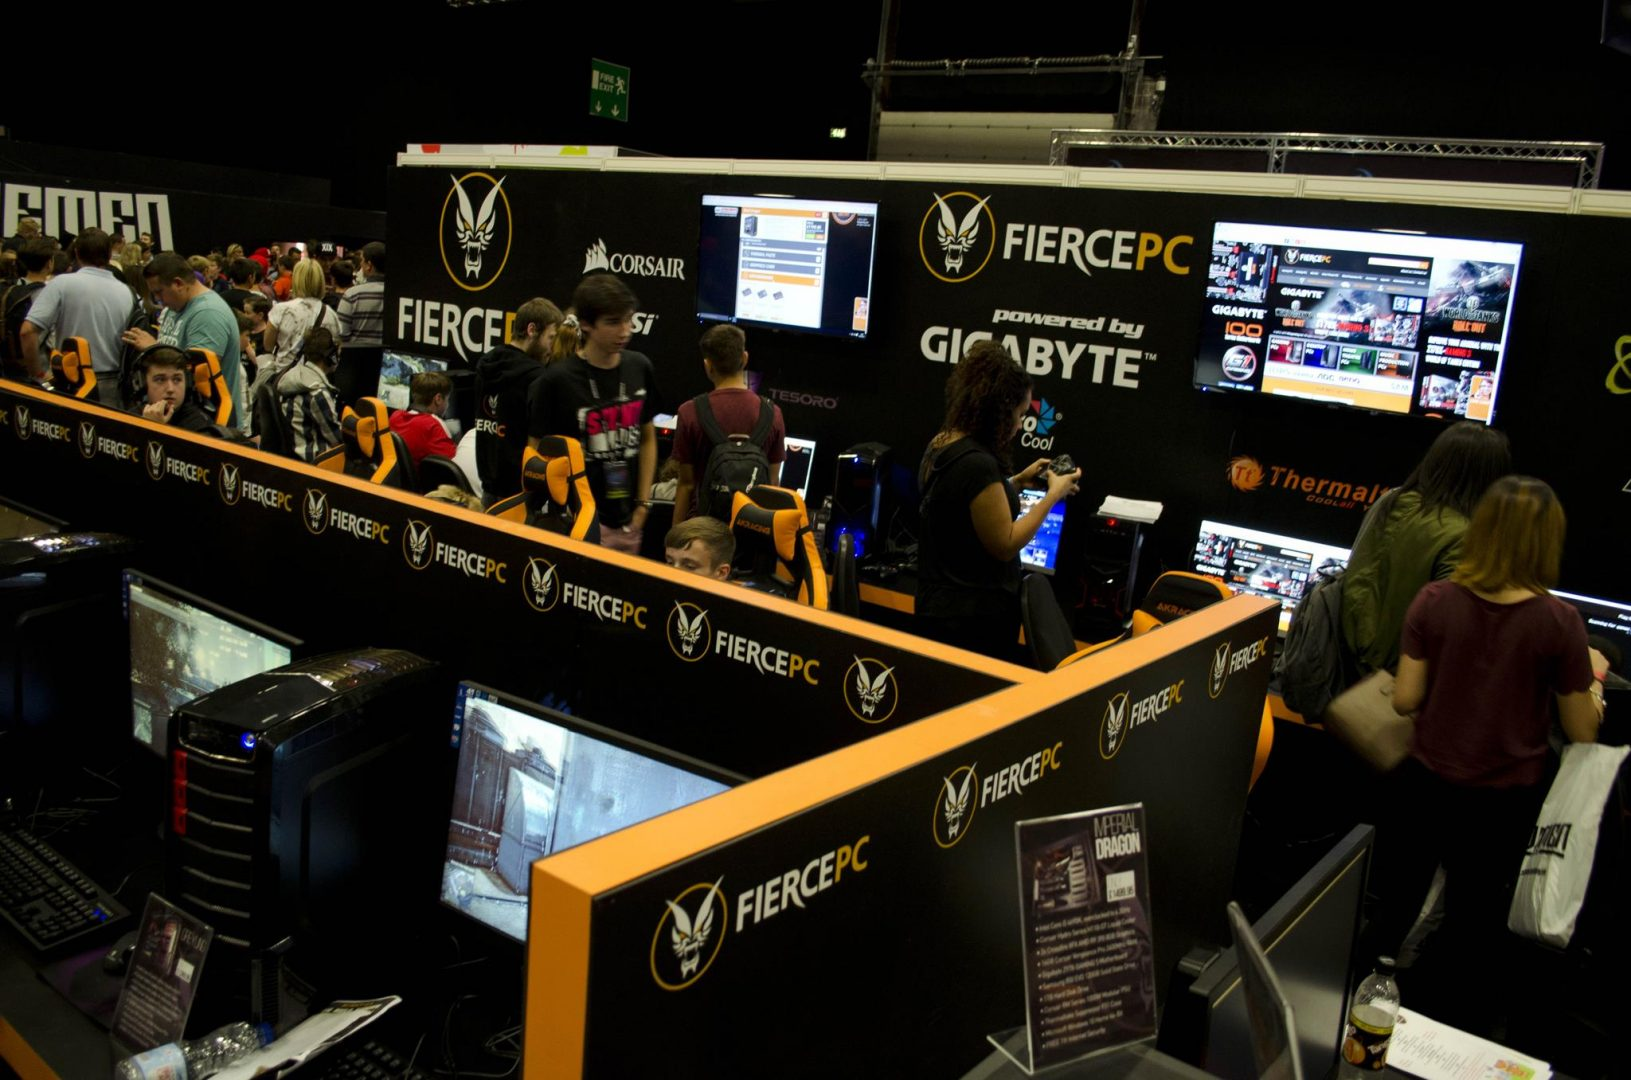 The Fierce PC Booth at I55  EnosTechcom